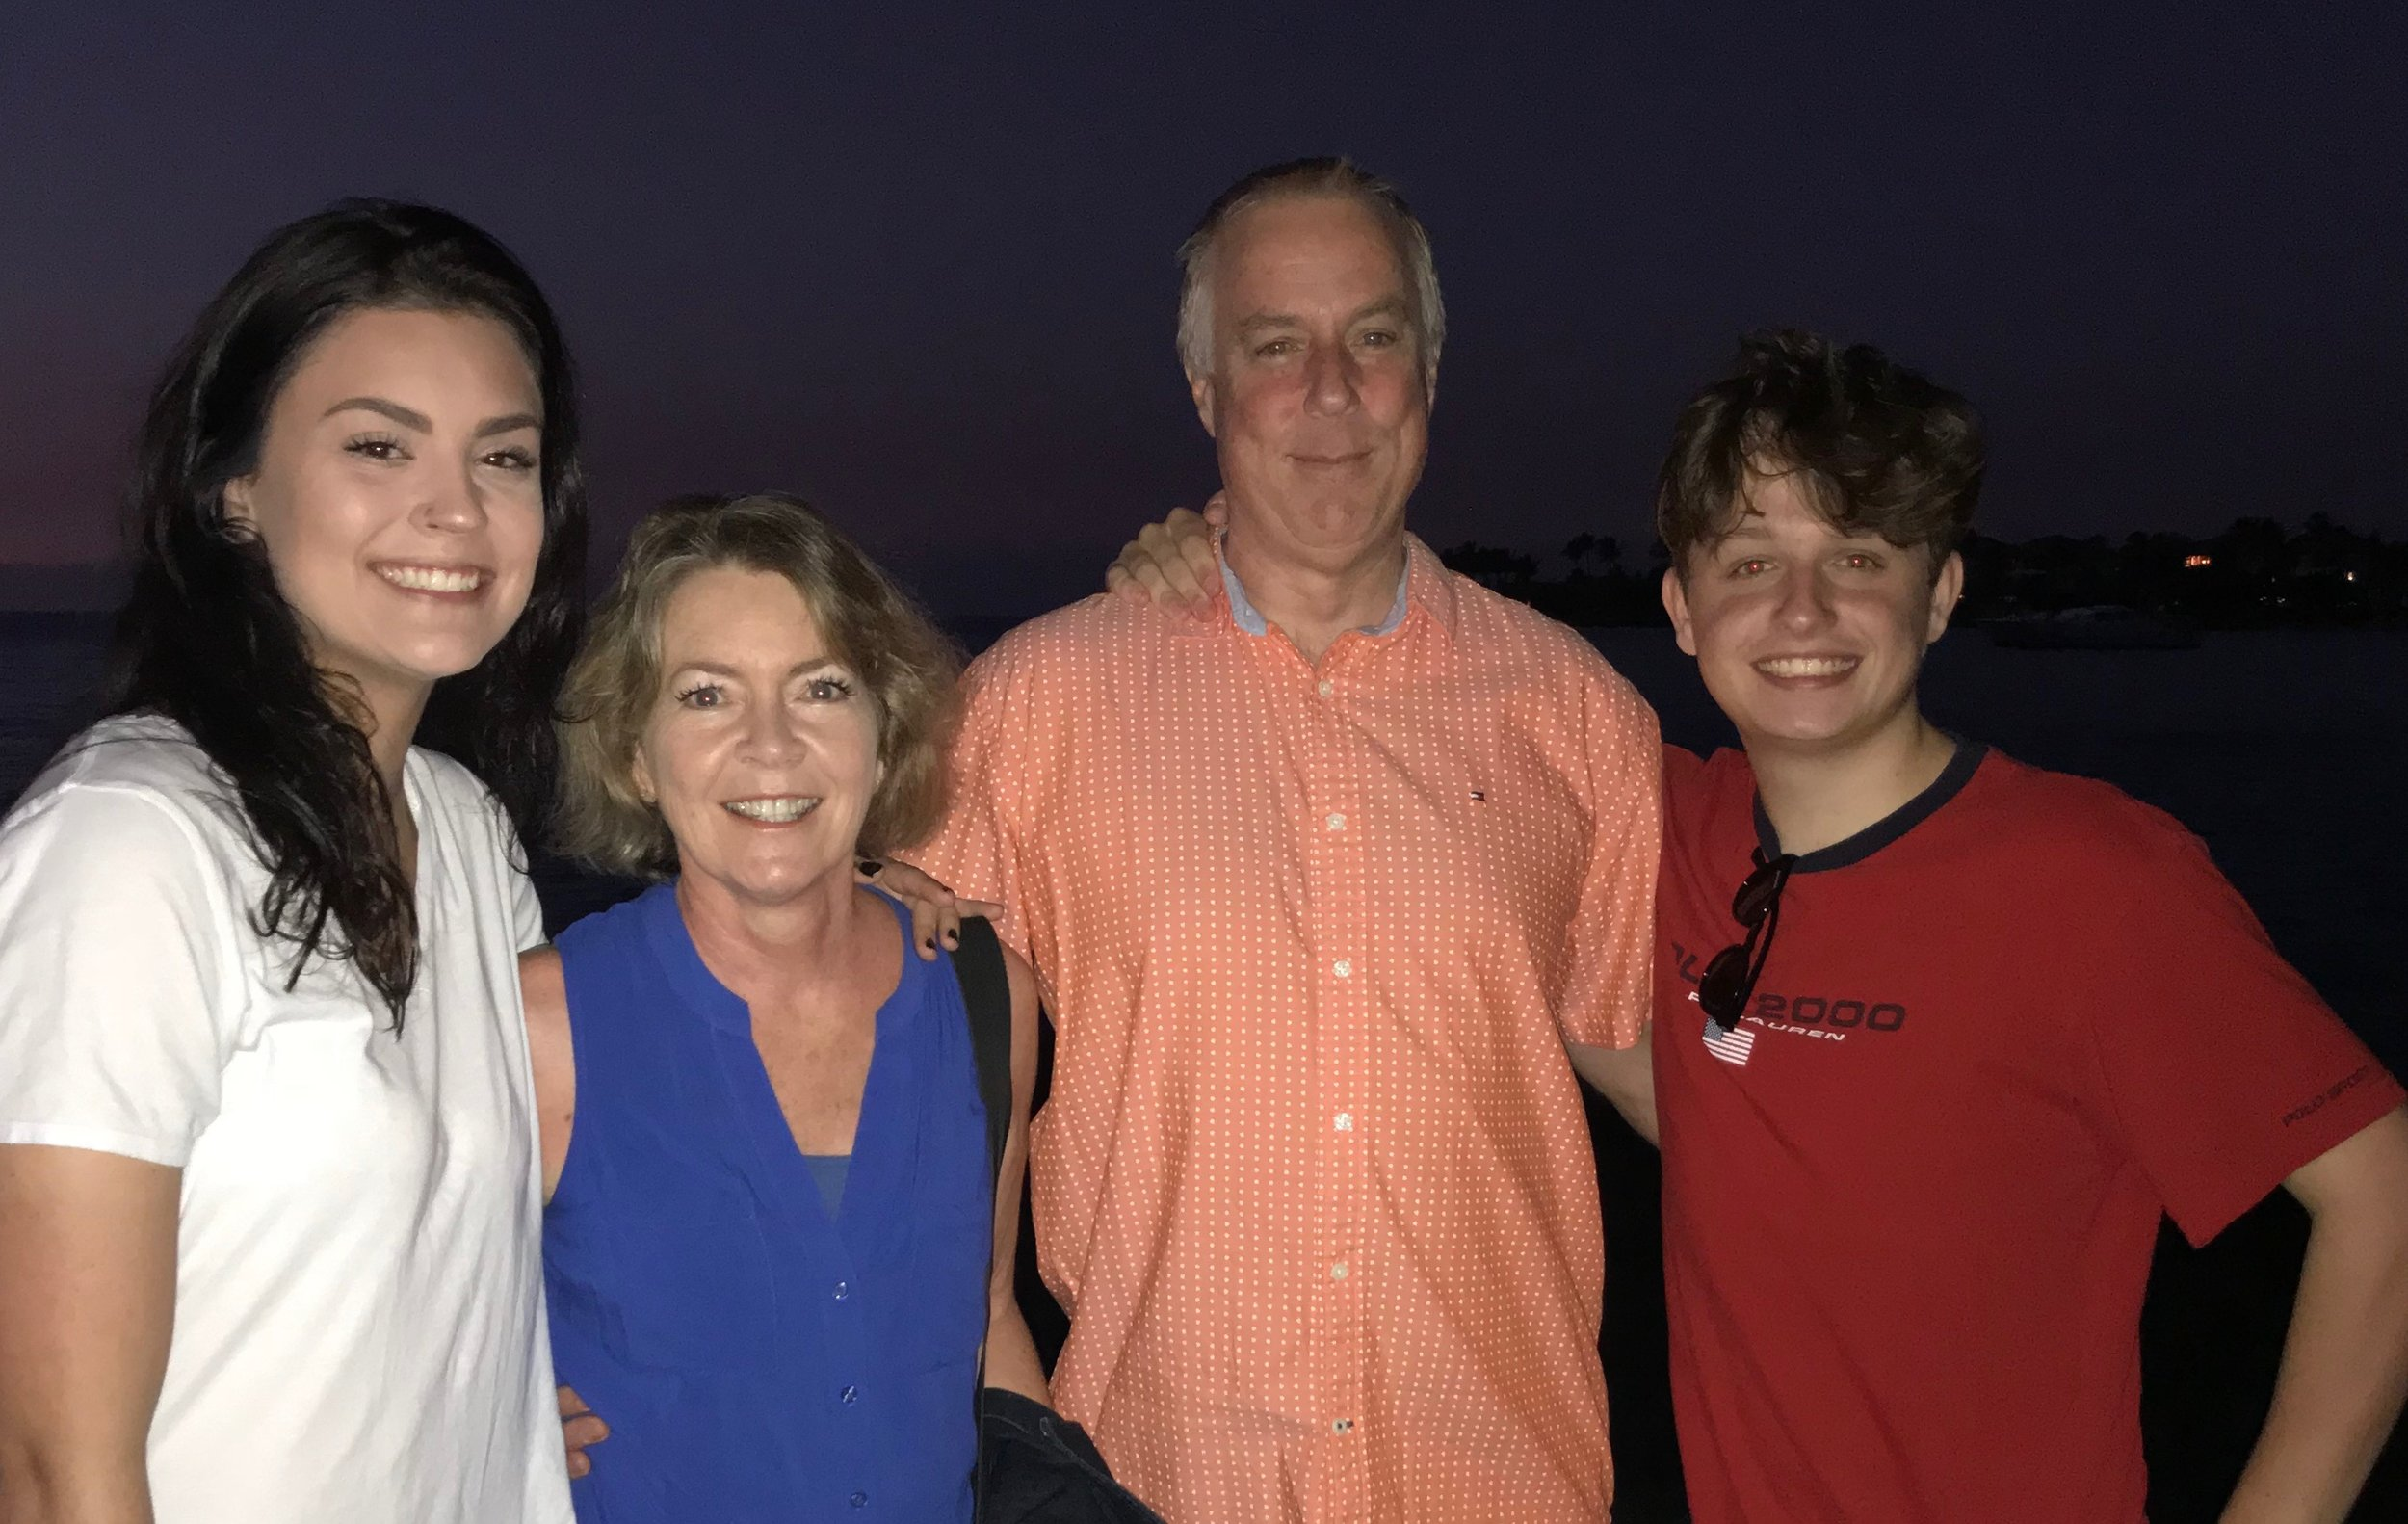 Millie (second from the left) pictured with her family